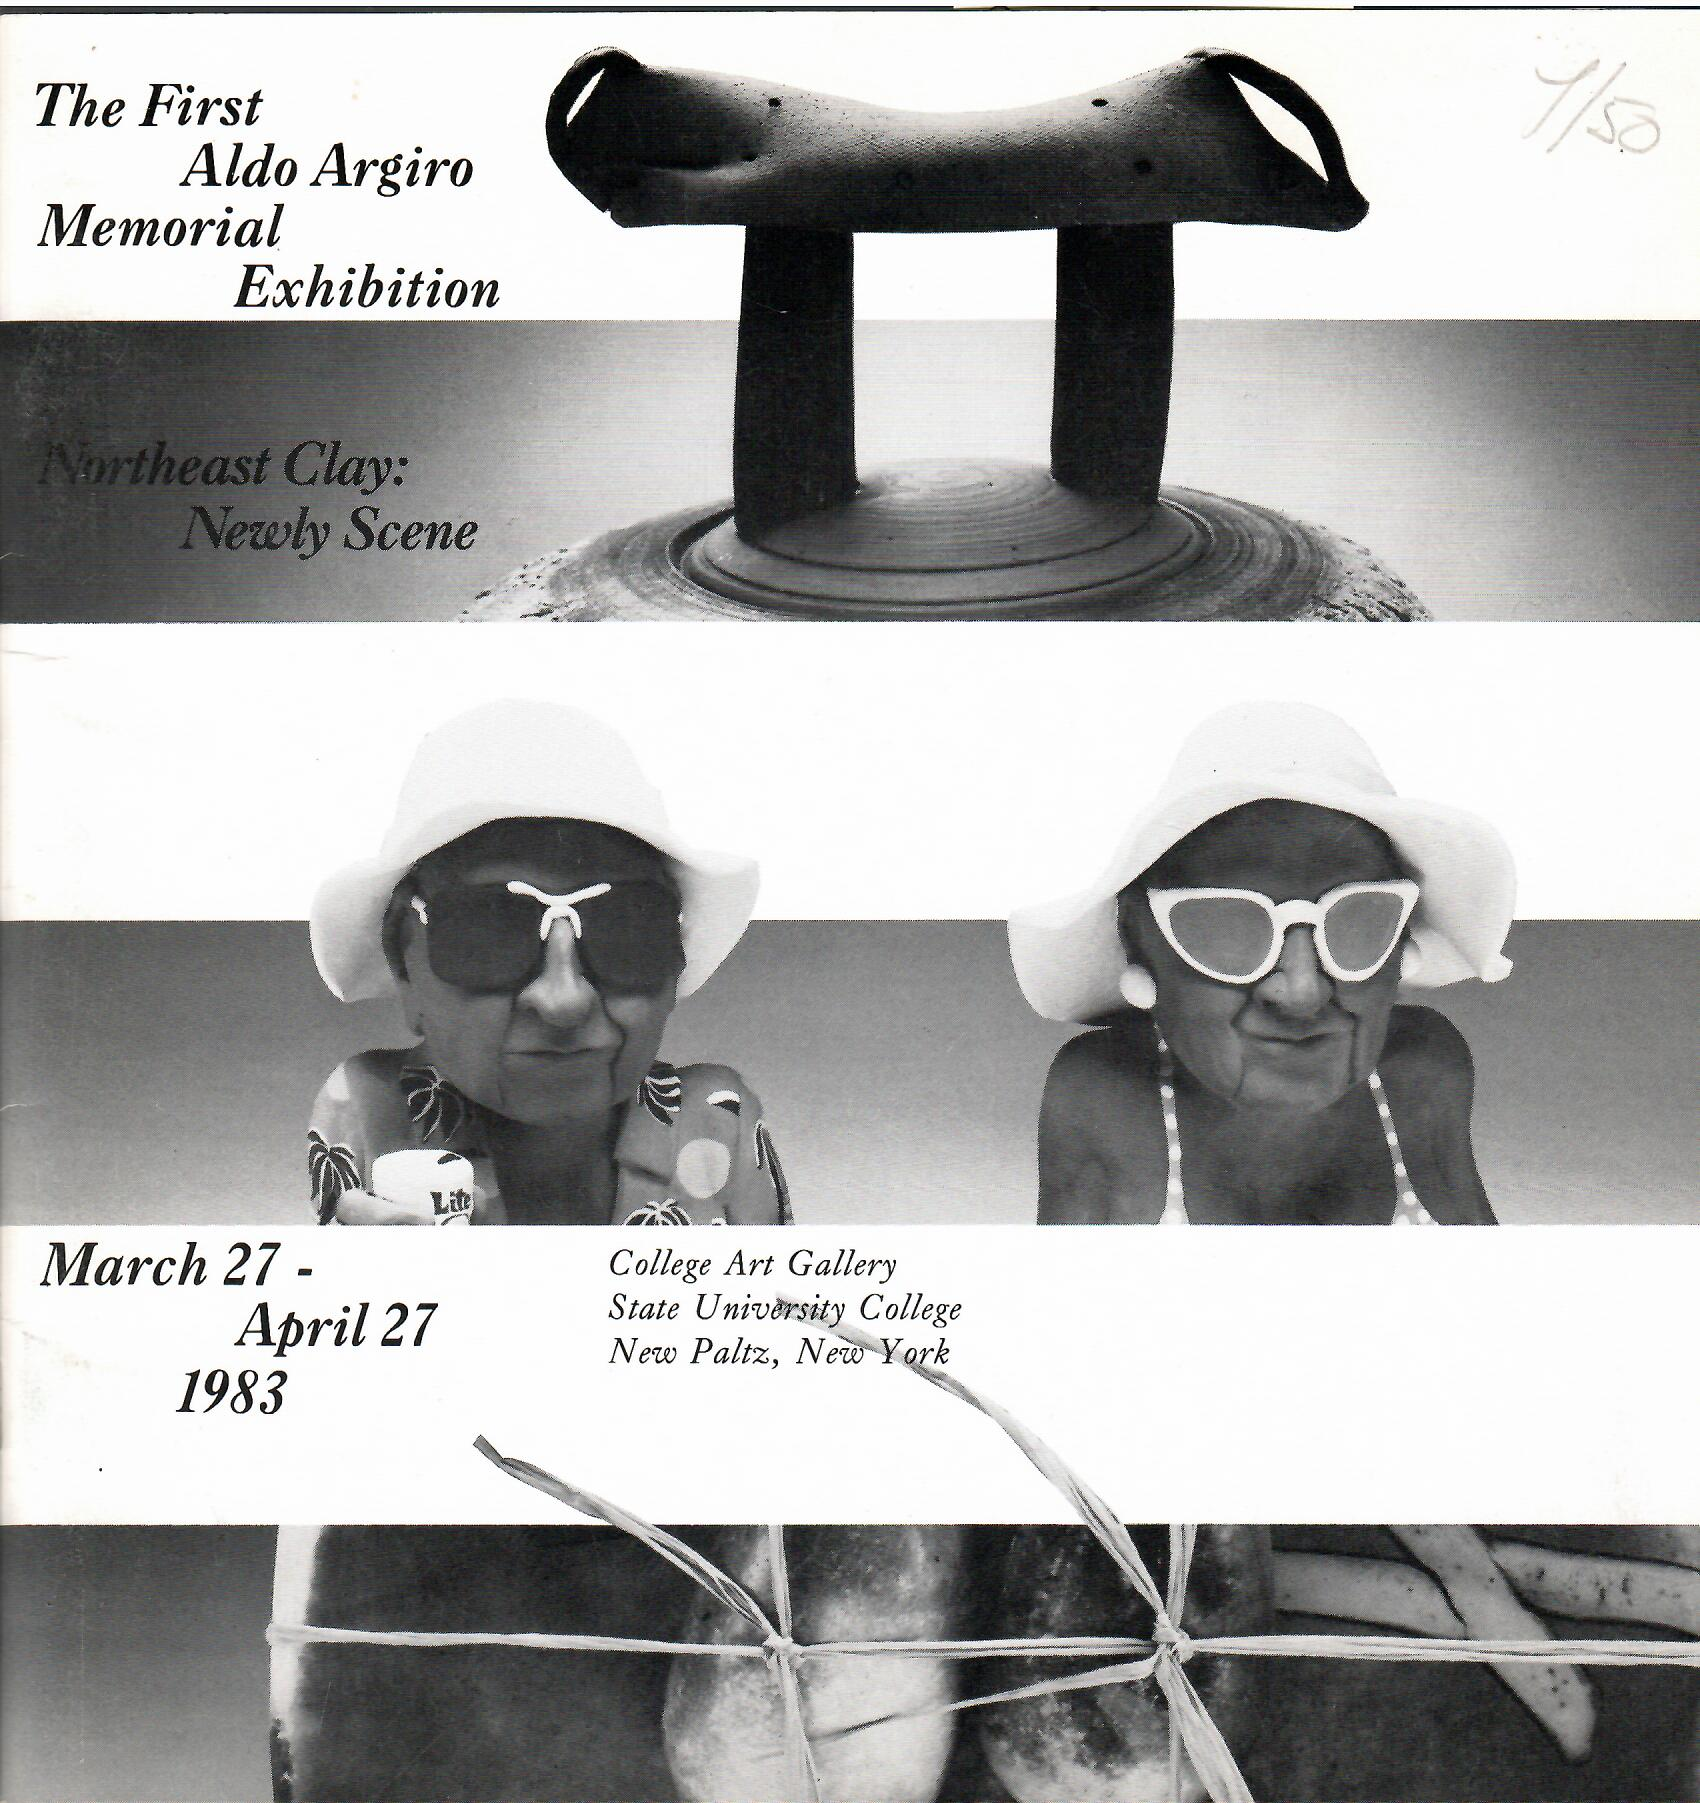 Image for The First Aldo Argiro Memorial Exhibition, March 27 - April 27, 1983; NORTHEAST CLAY: NEWLY SCENE